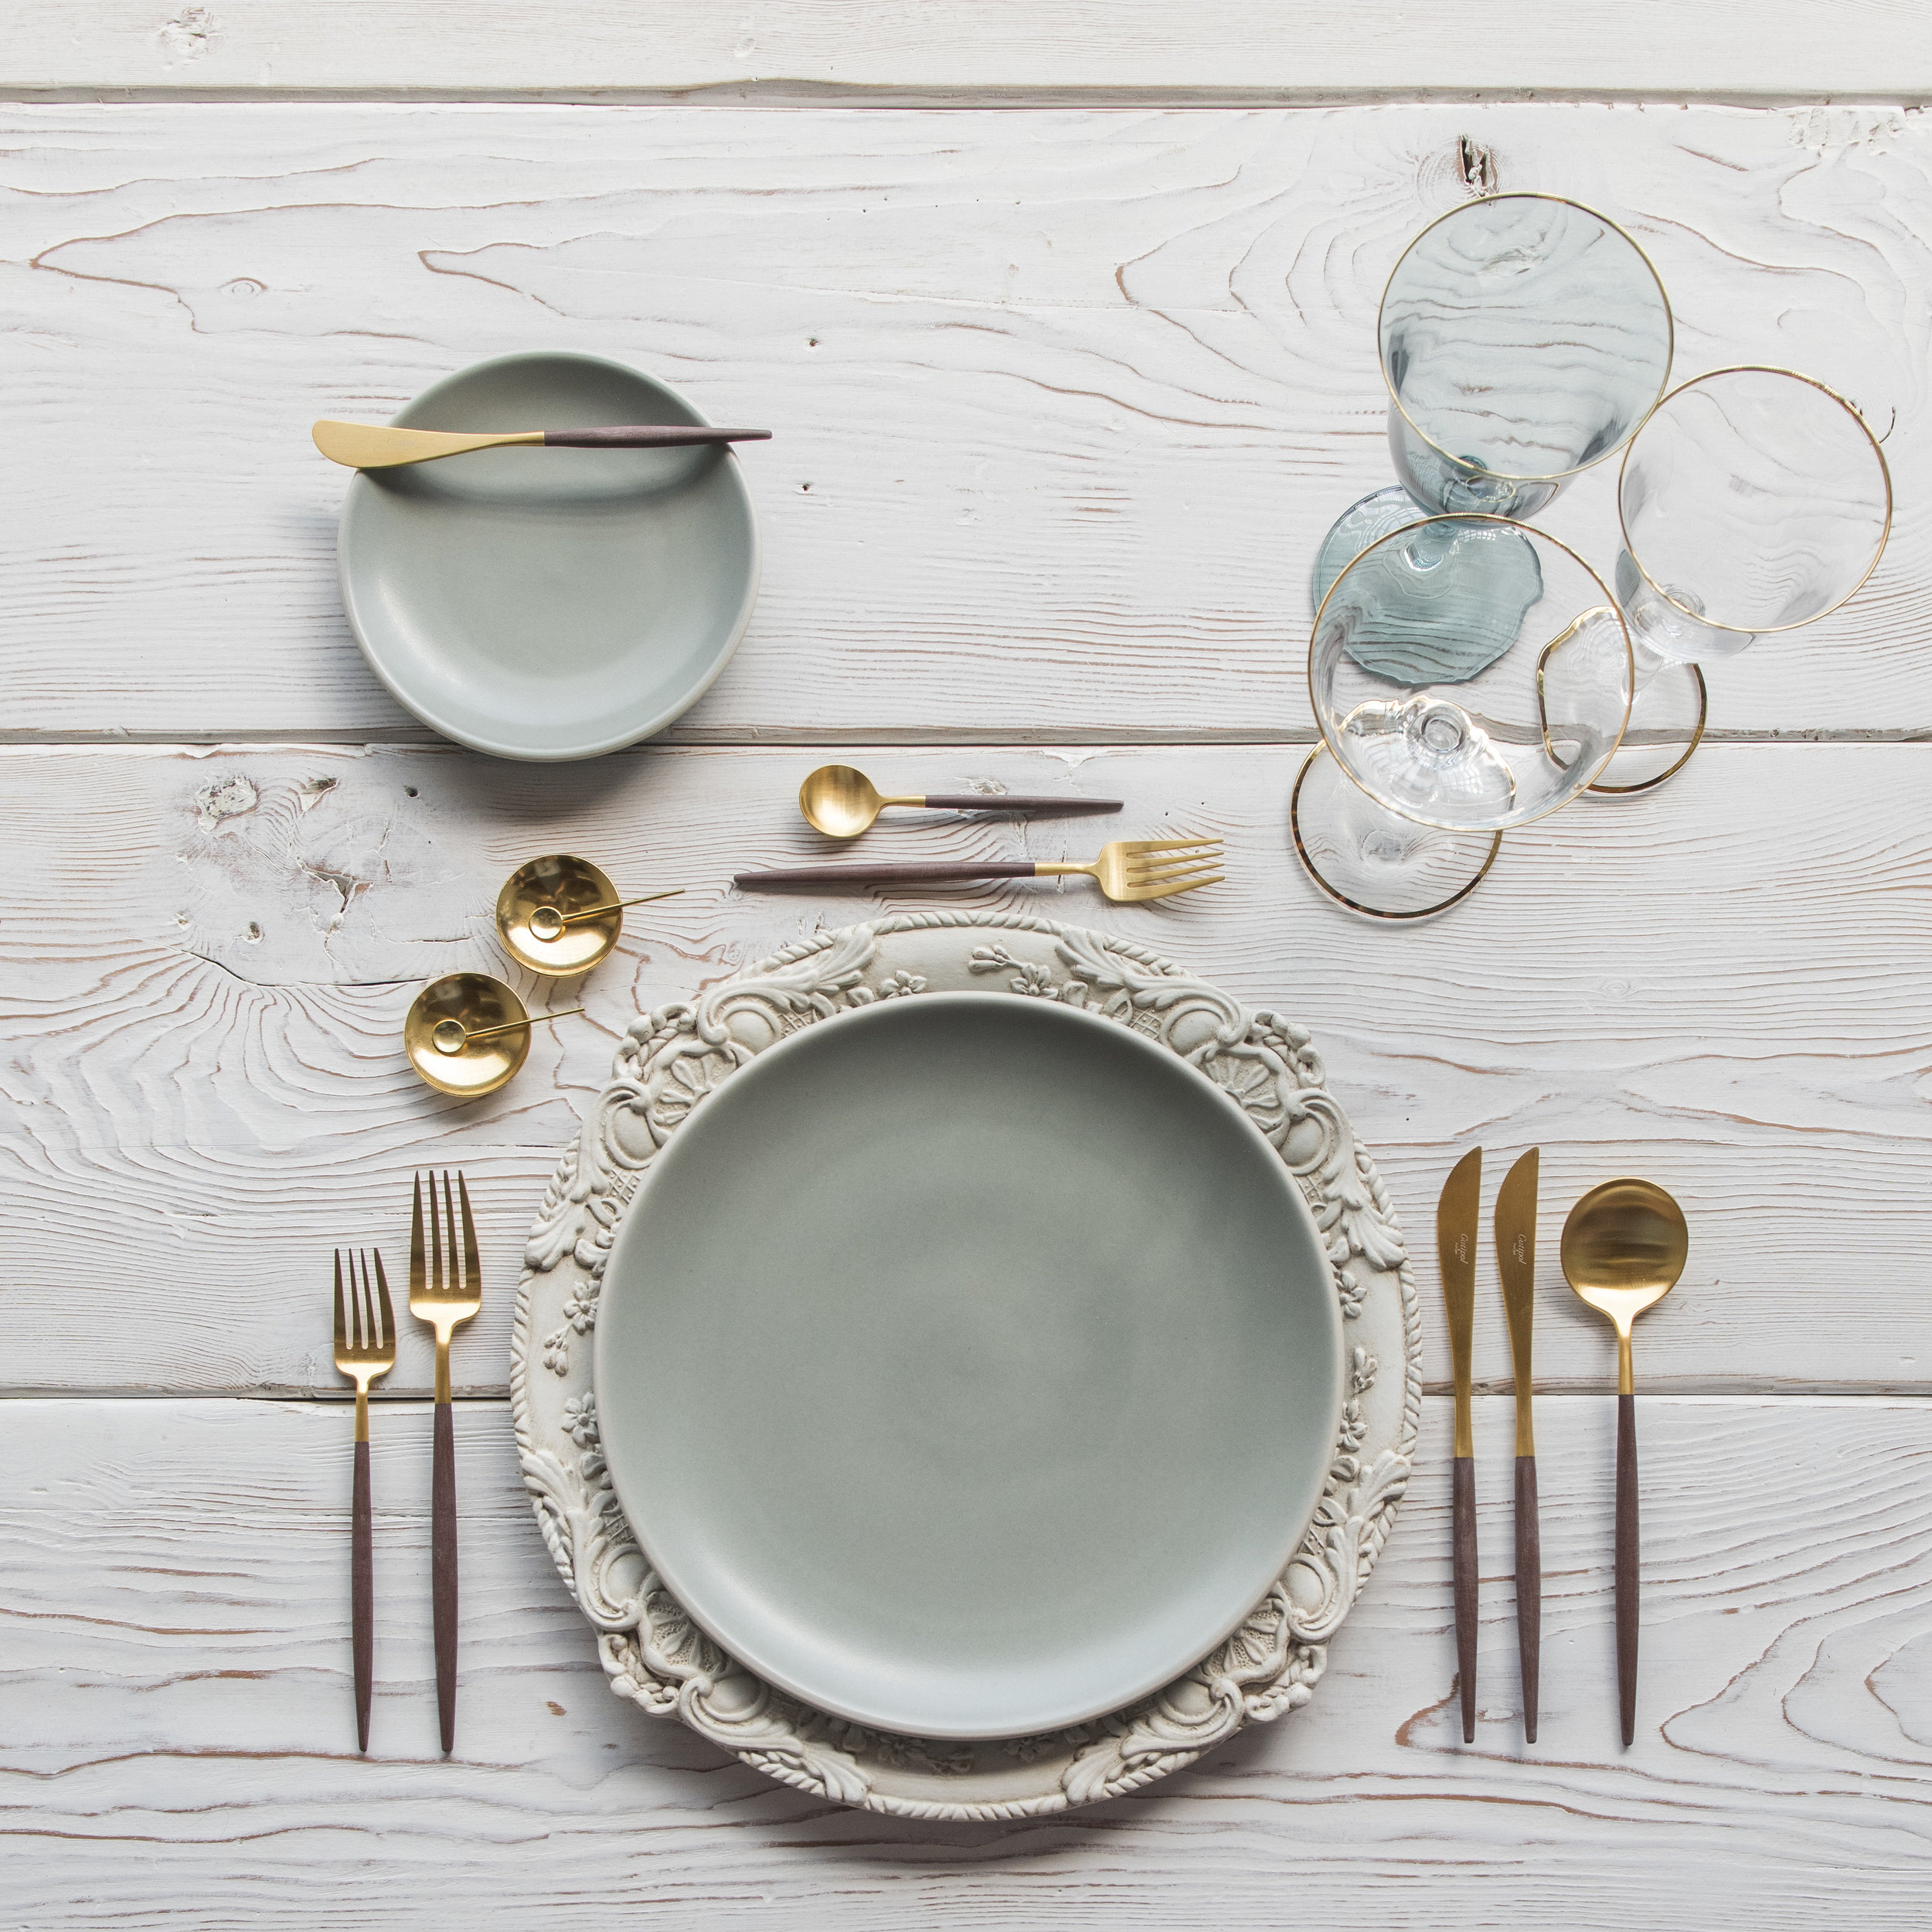 RENT: Verona Chargers in Antique White + Heath Ceramics in Mist + Goa Flatware in Brushed 24k Gold/Wood + Chloe 24k Gold Rimmed Stemware + Chloe 24k Gold Rimmed Goblet in Agave + 14k Gold Salt Cellars + Tiny Gold Spoons  SHOP: Verona Chargers in Antique White + Goa Flatware in Brushed 24k Gold/Wood + Chloe 24k Gold Rimmed Stemware + 14k Gold Salt Cellars + Tiny Gold Spoons